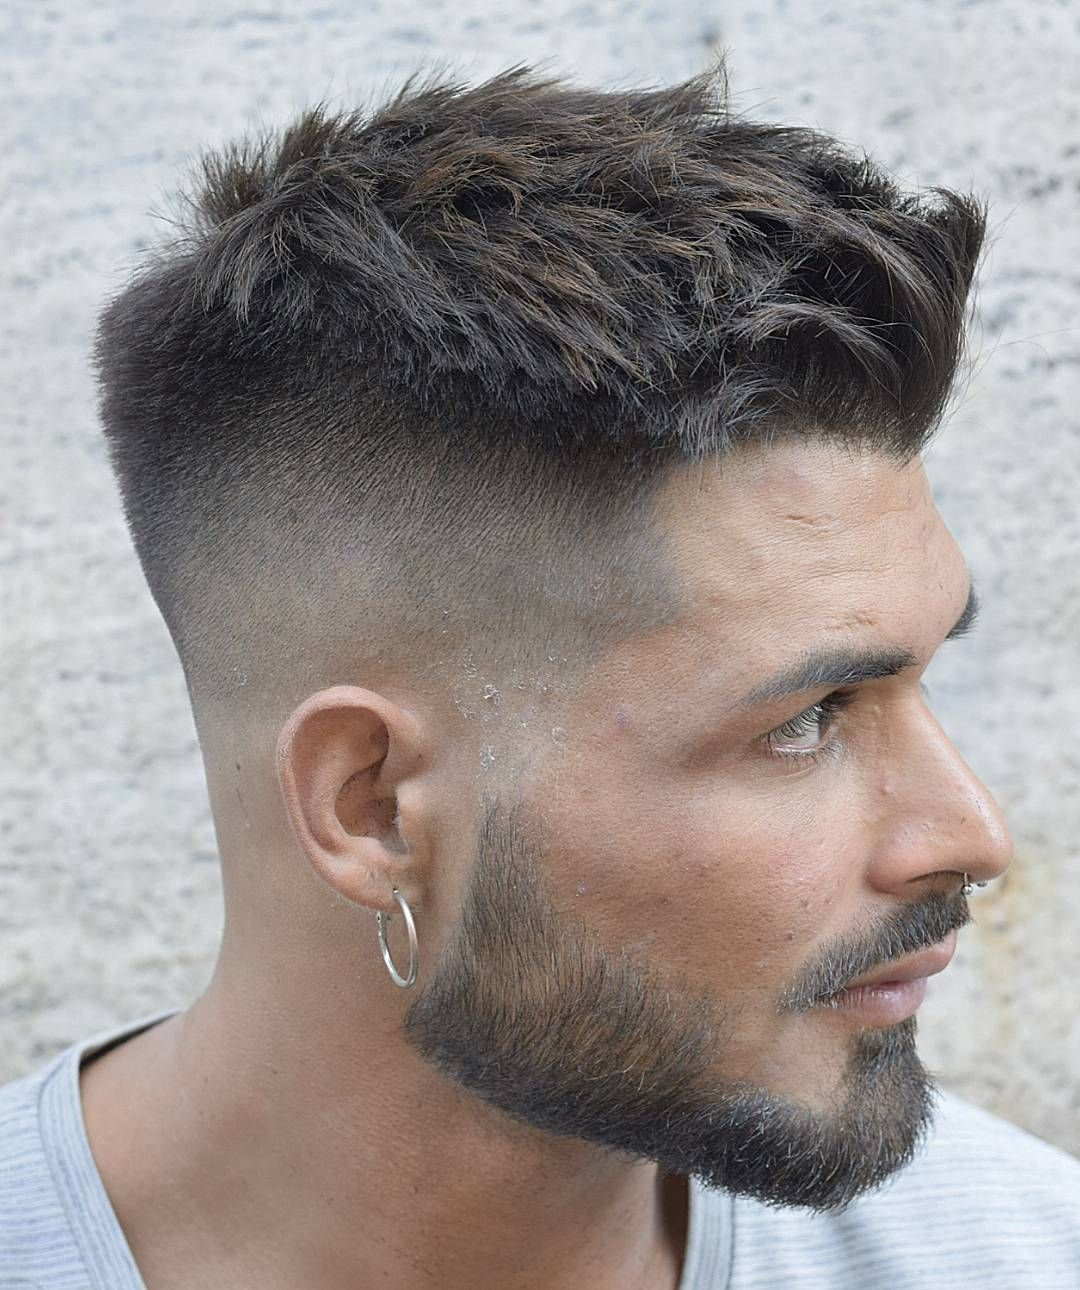 Curly haircuts mens the best menus haircuts  hairstyles ultimate roundup  hair shit